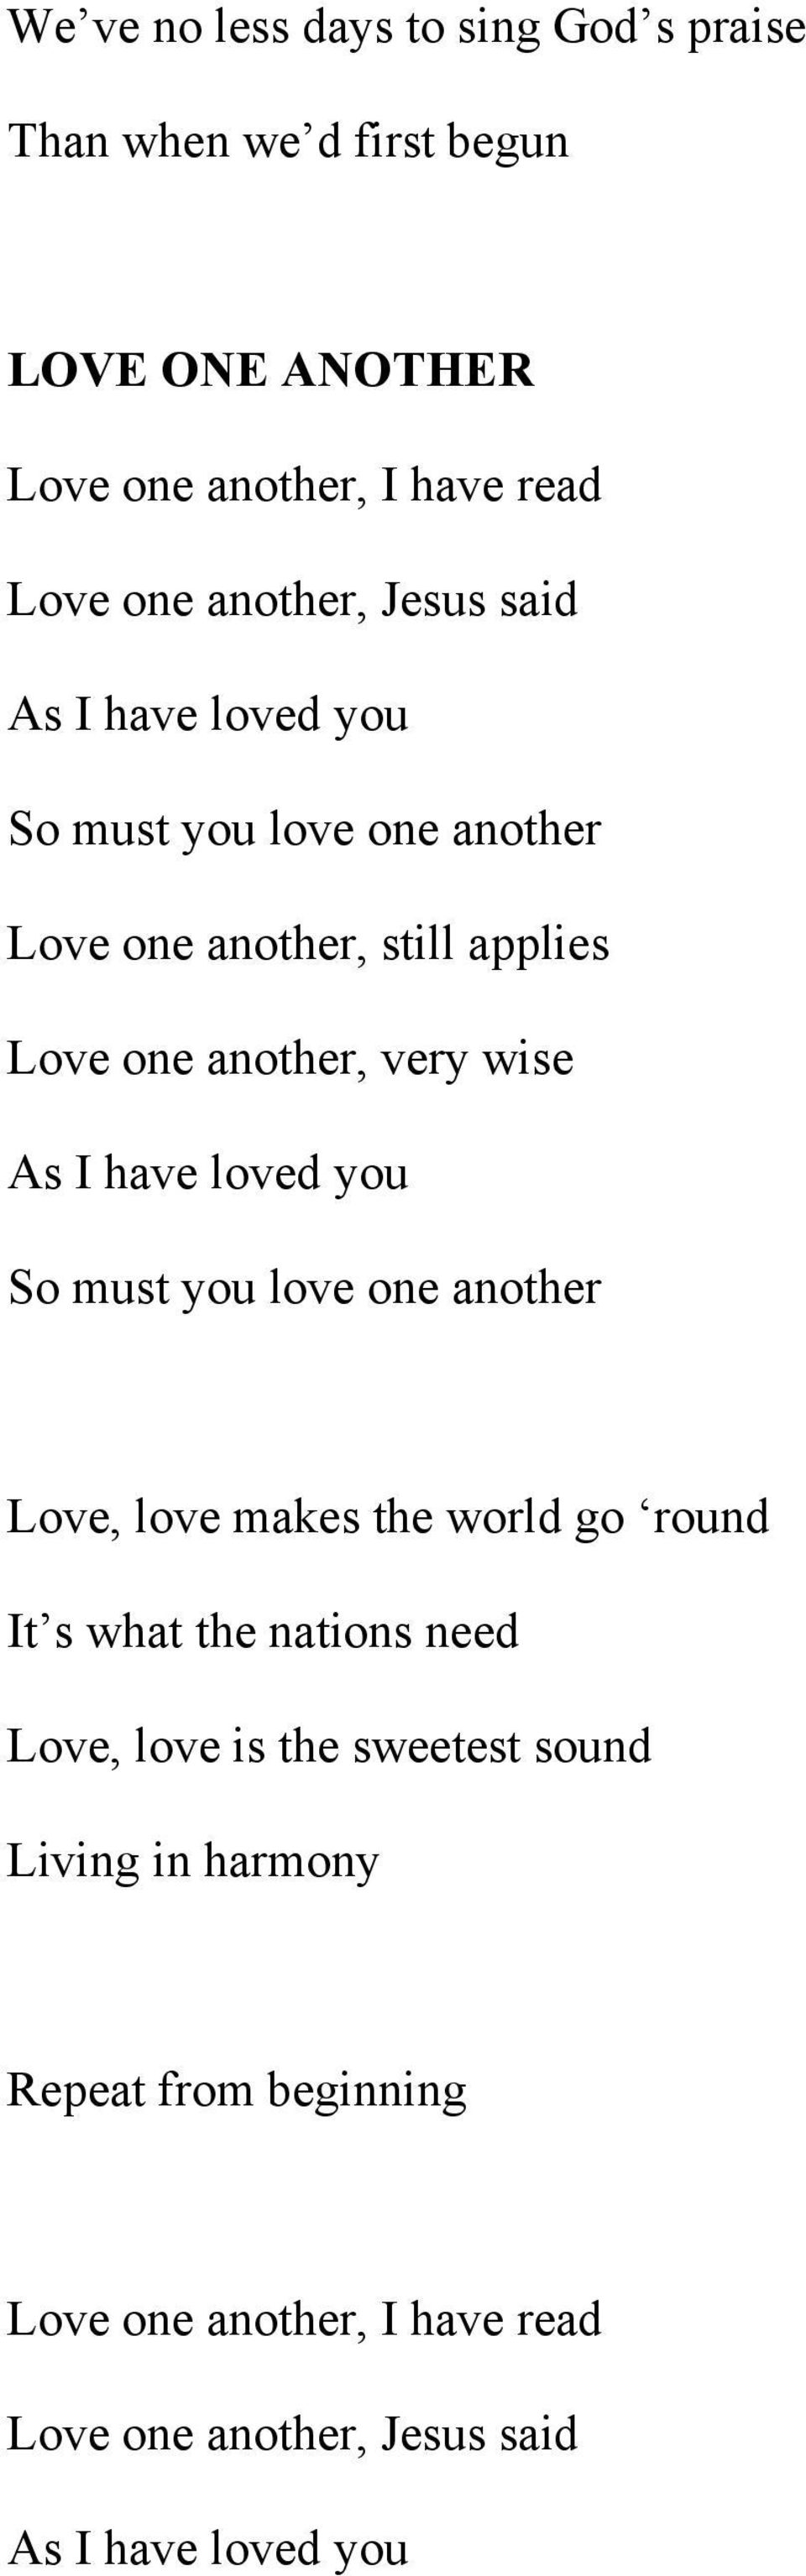 As I have loved you So must you love one another Love, love makes the world go round It s what the nations need Love, love is